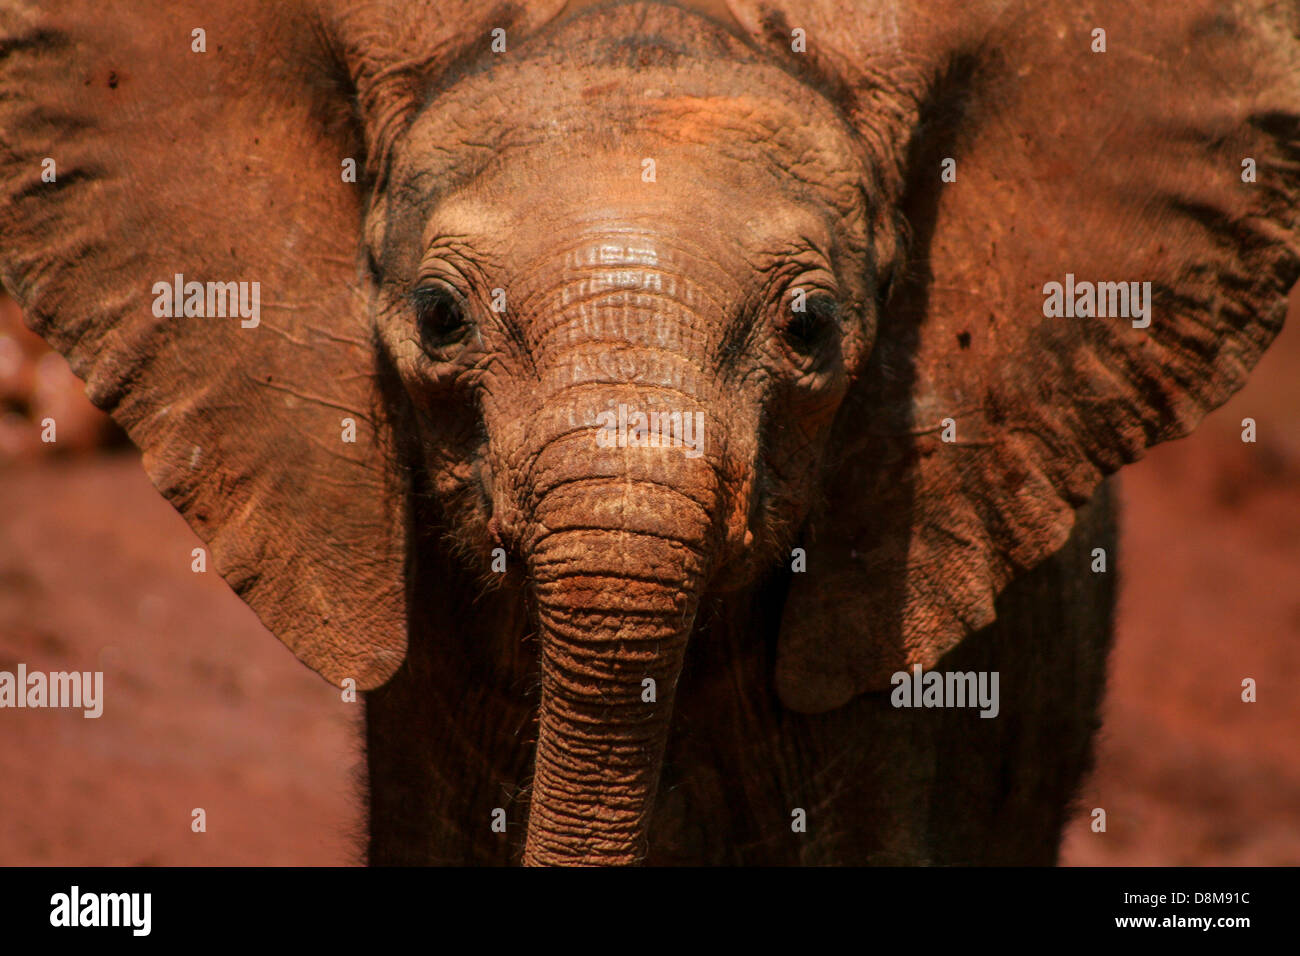 A young orphan at The David Sheldrick Wildlife Trust. - Stock Image